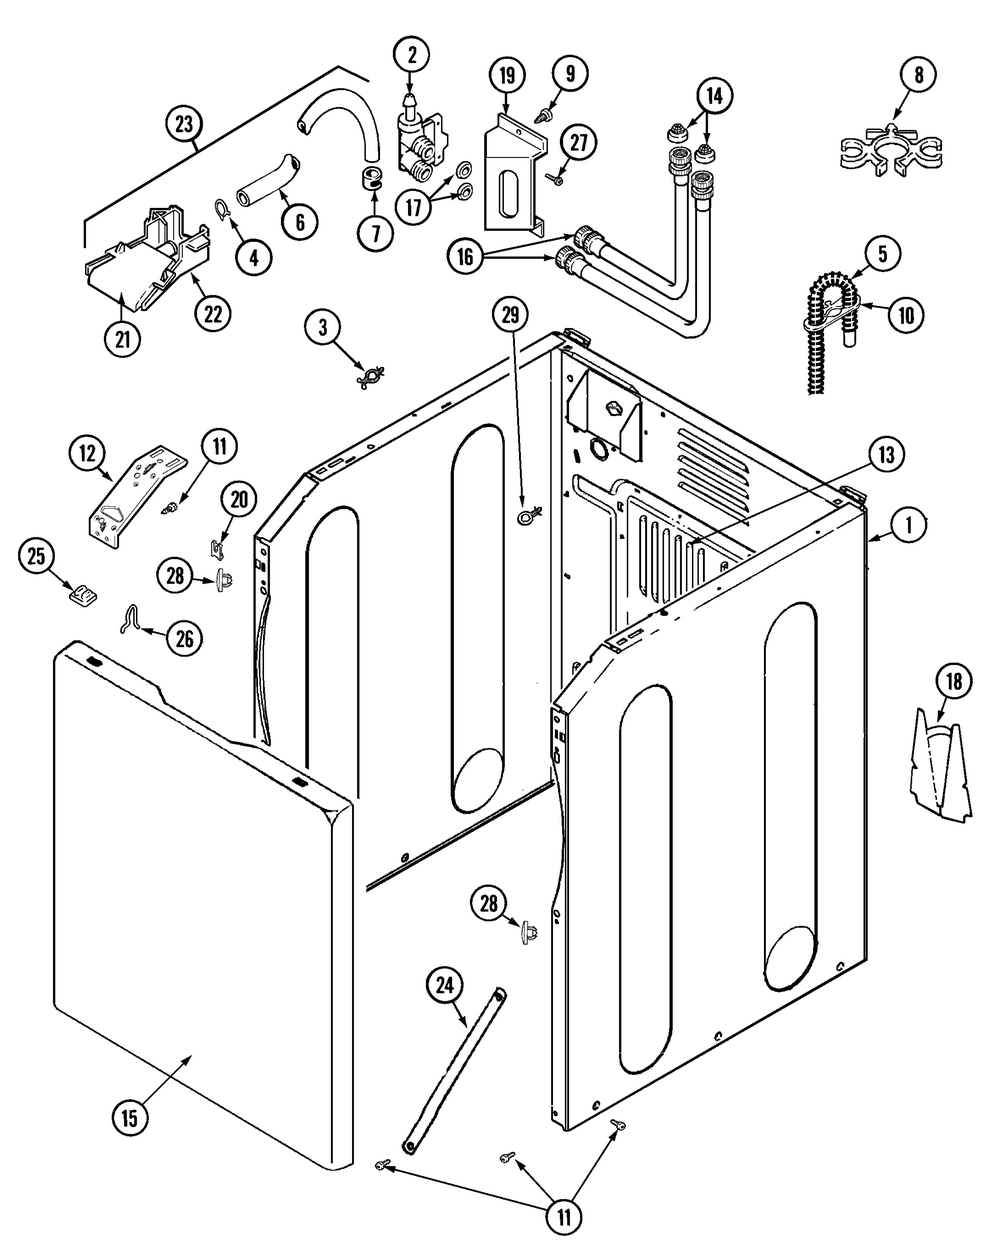 Maytag Washer Parts | Model Mav5960Aww | Sears Partsdirect with Maytag Front Load Washer Parts Diagram